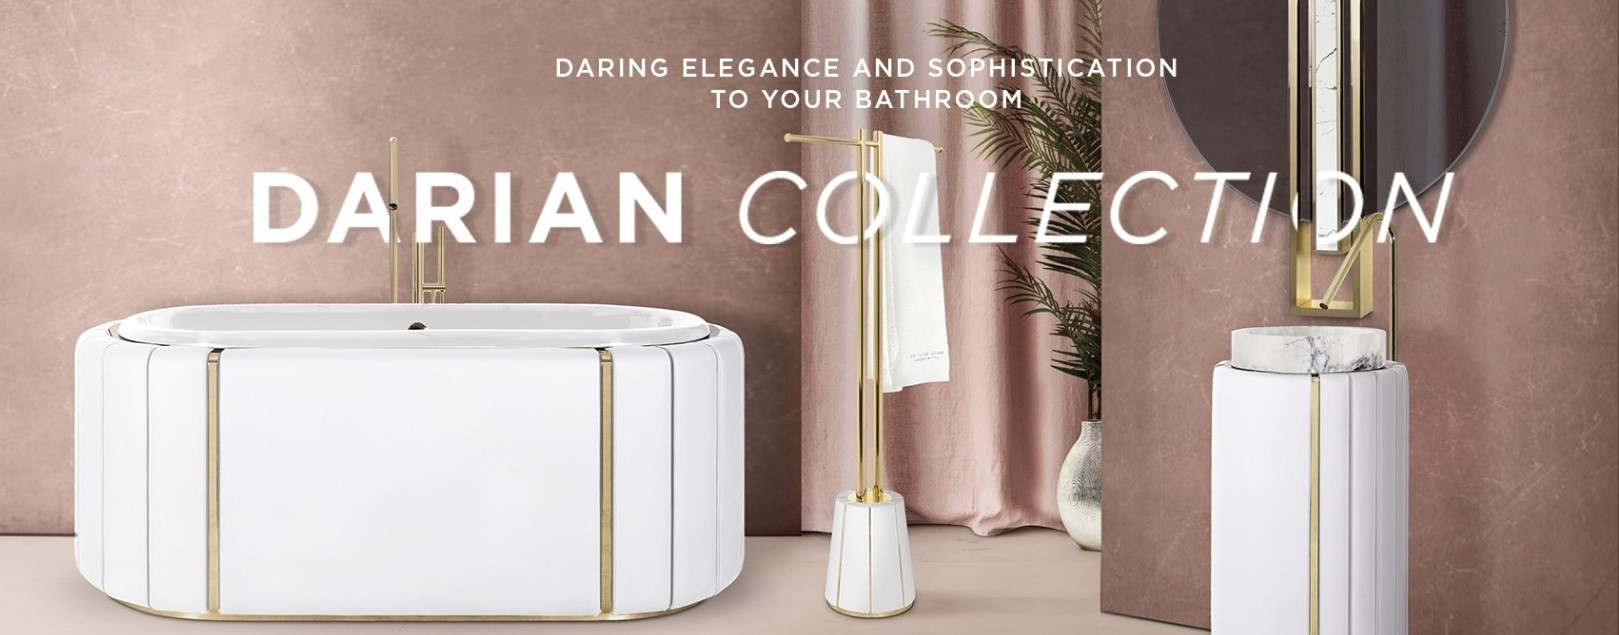 darian collection Darian Collection – Daring Elegance and Sophistication to Your Bathroom Darian Collection 4 1